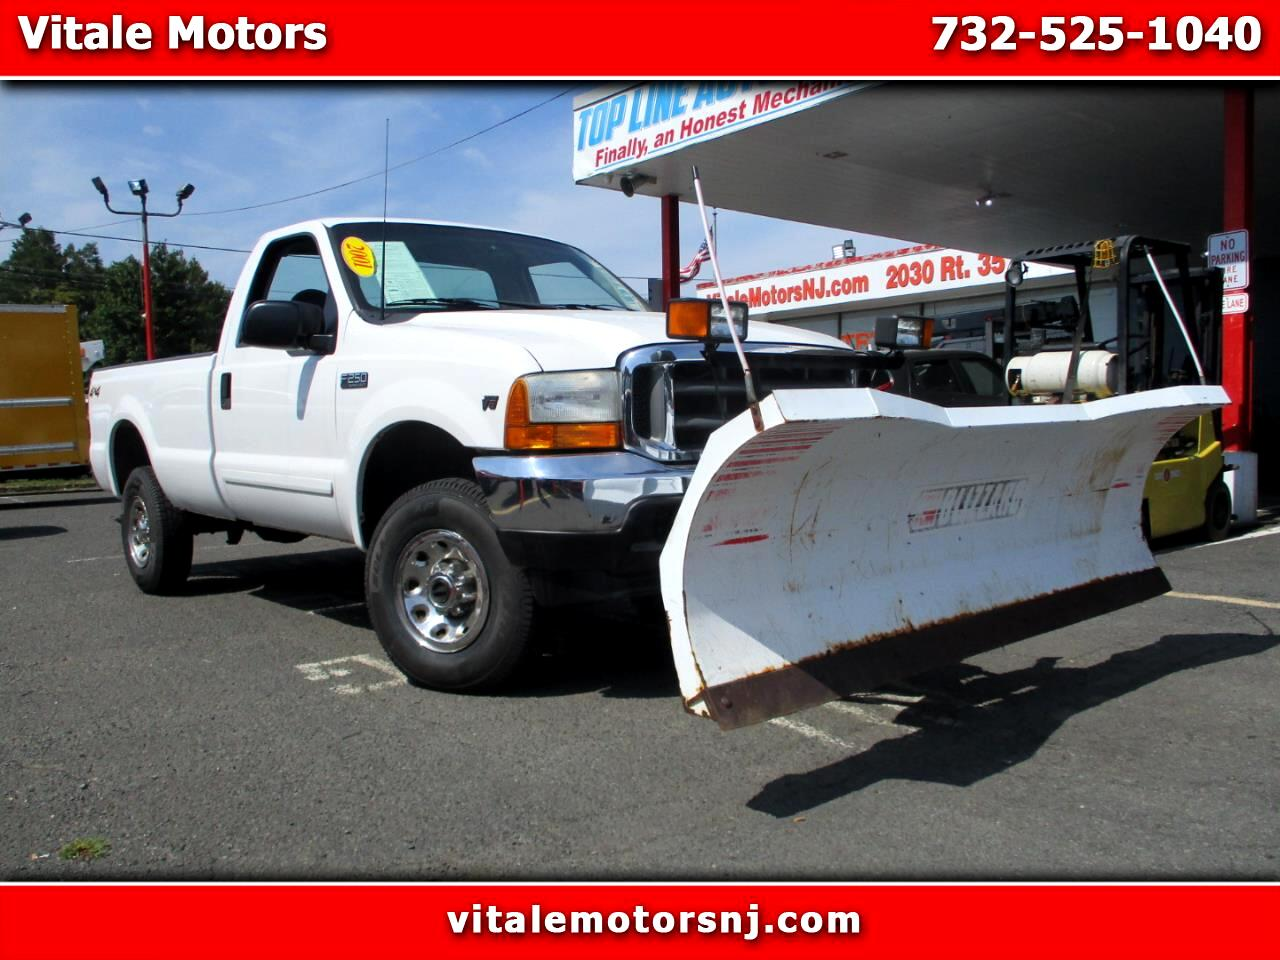 2001 Ford F-250 SD REG. CAB LONG BED 4X4 W/ SNOW PLOW ** 18K MILES **